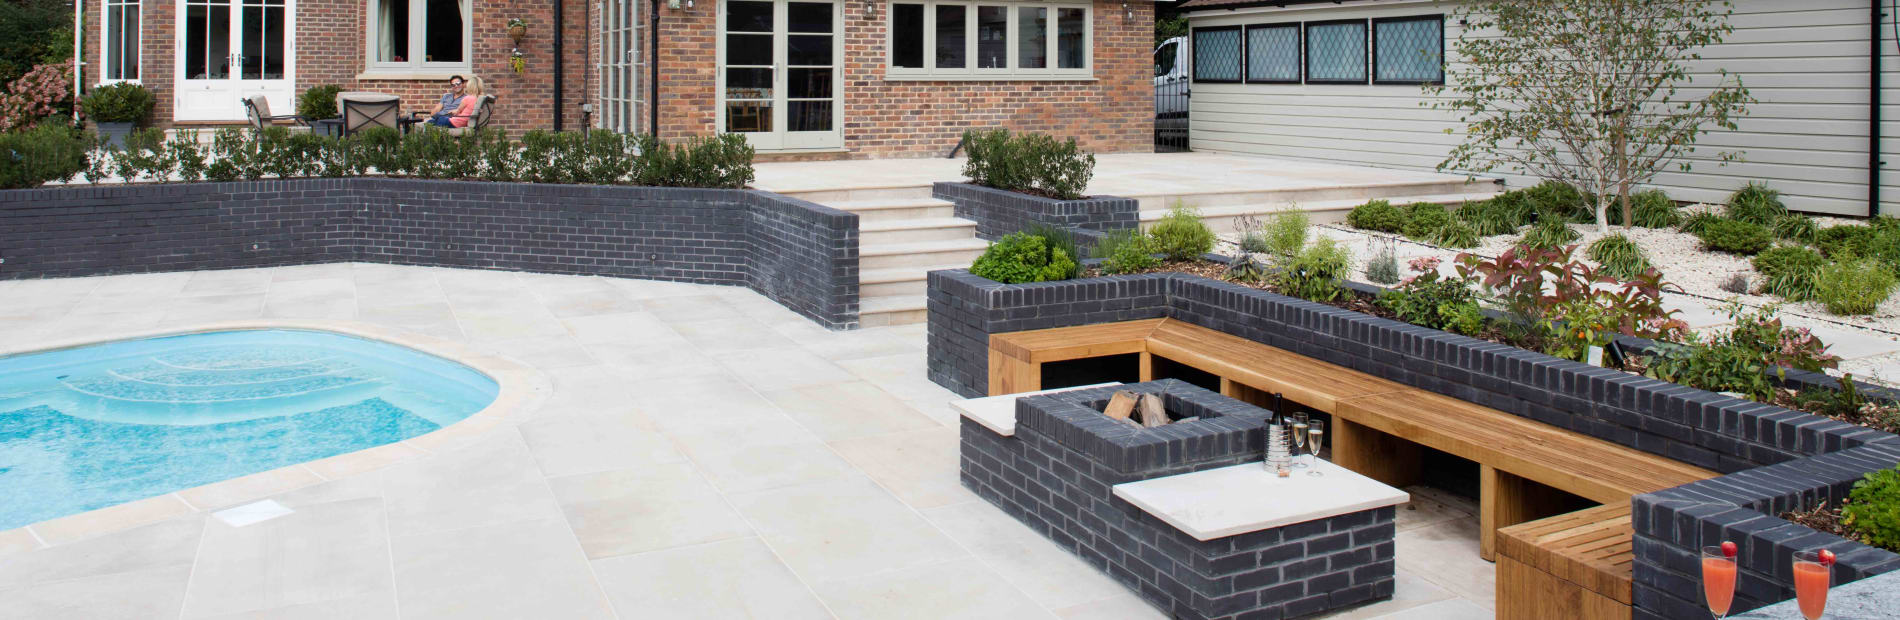 marshalls sawn verusro garden paving in sawn versuro in antique silver multi.